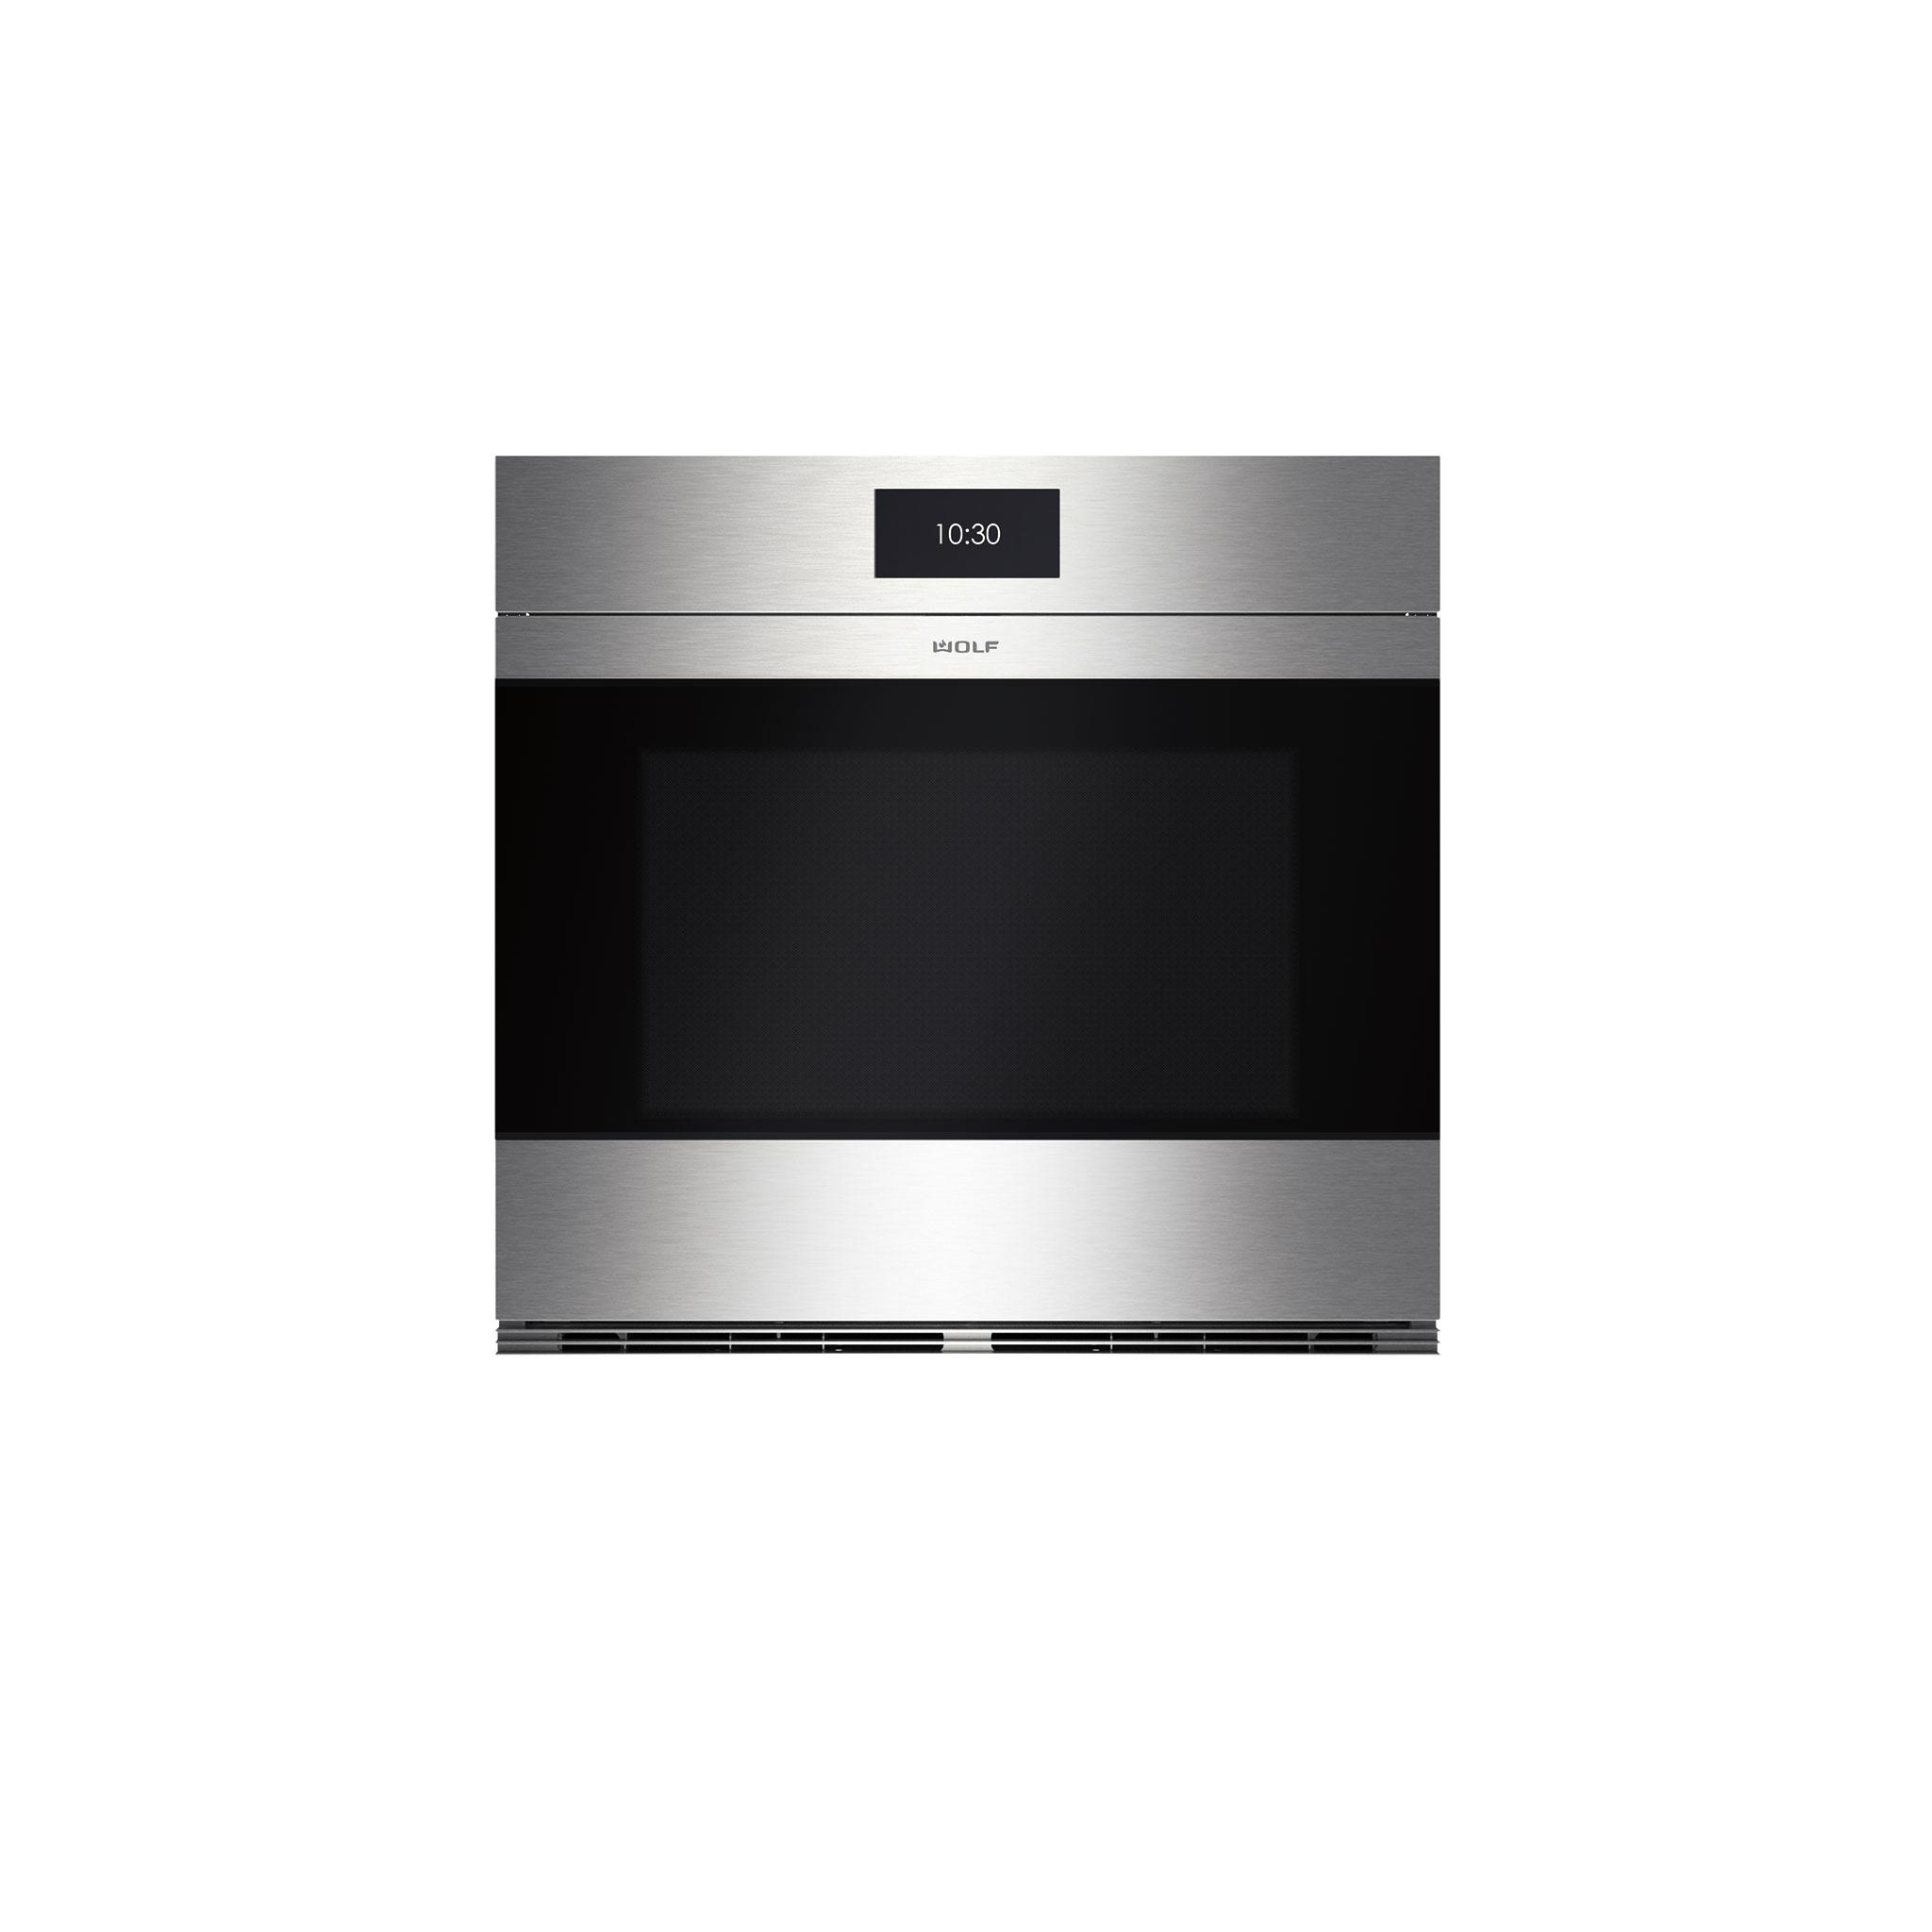 Wolf Model So30cms Caplan S Appliances Toronto